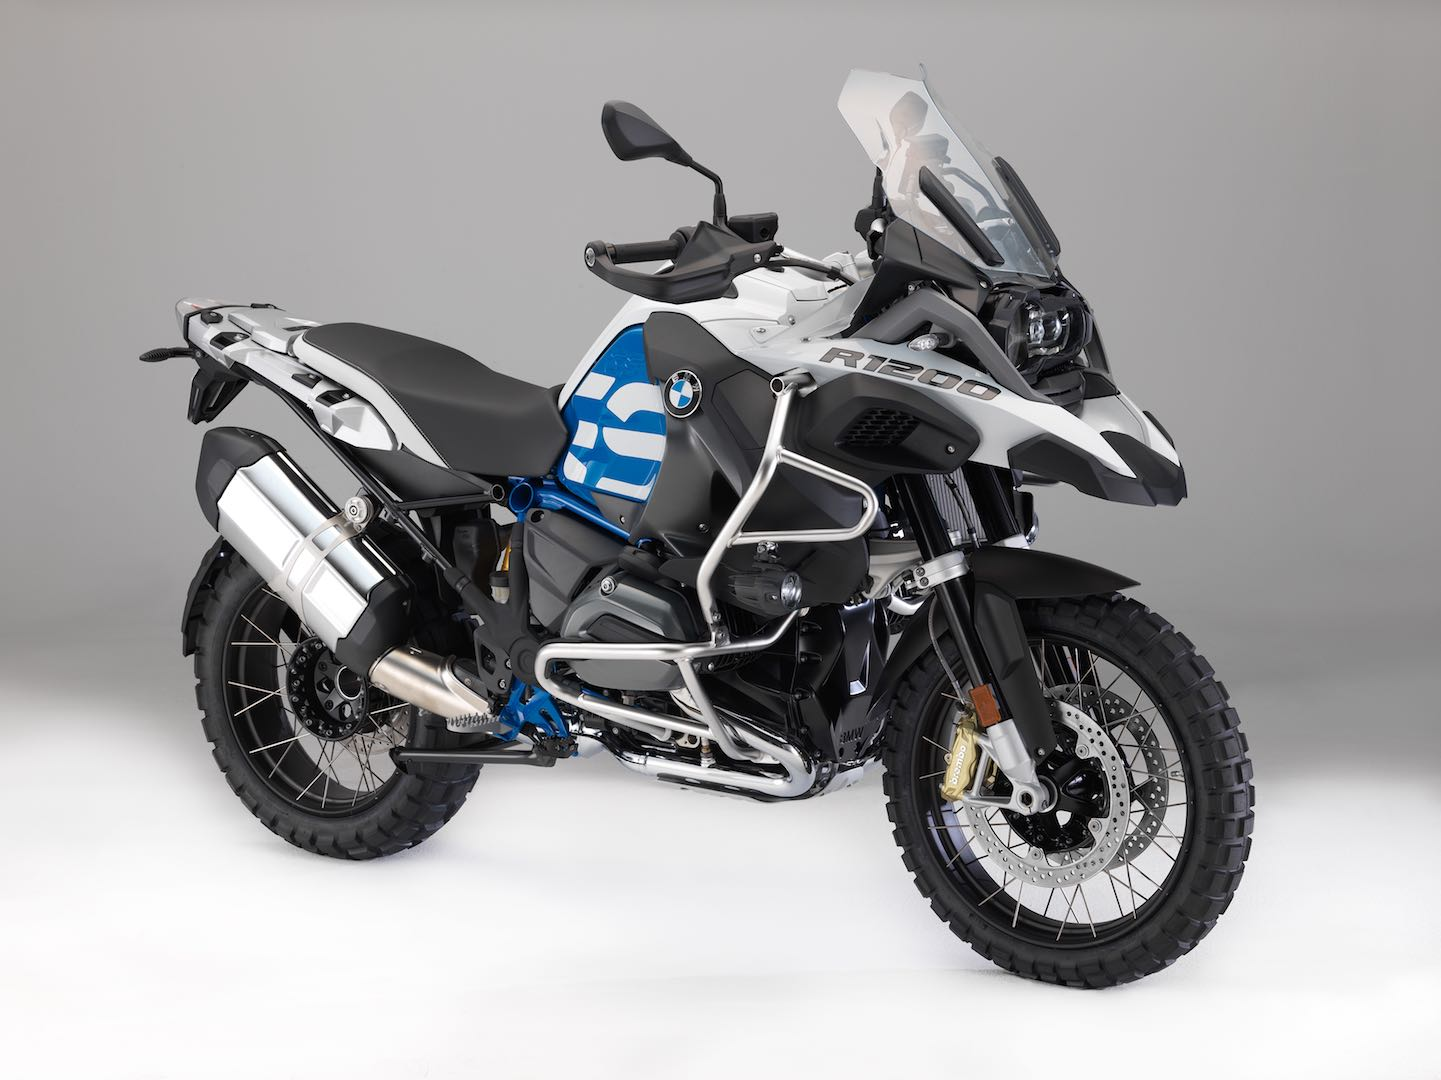 2018 BMW R 1200 GS Adventure colors